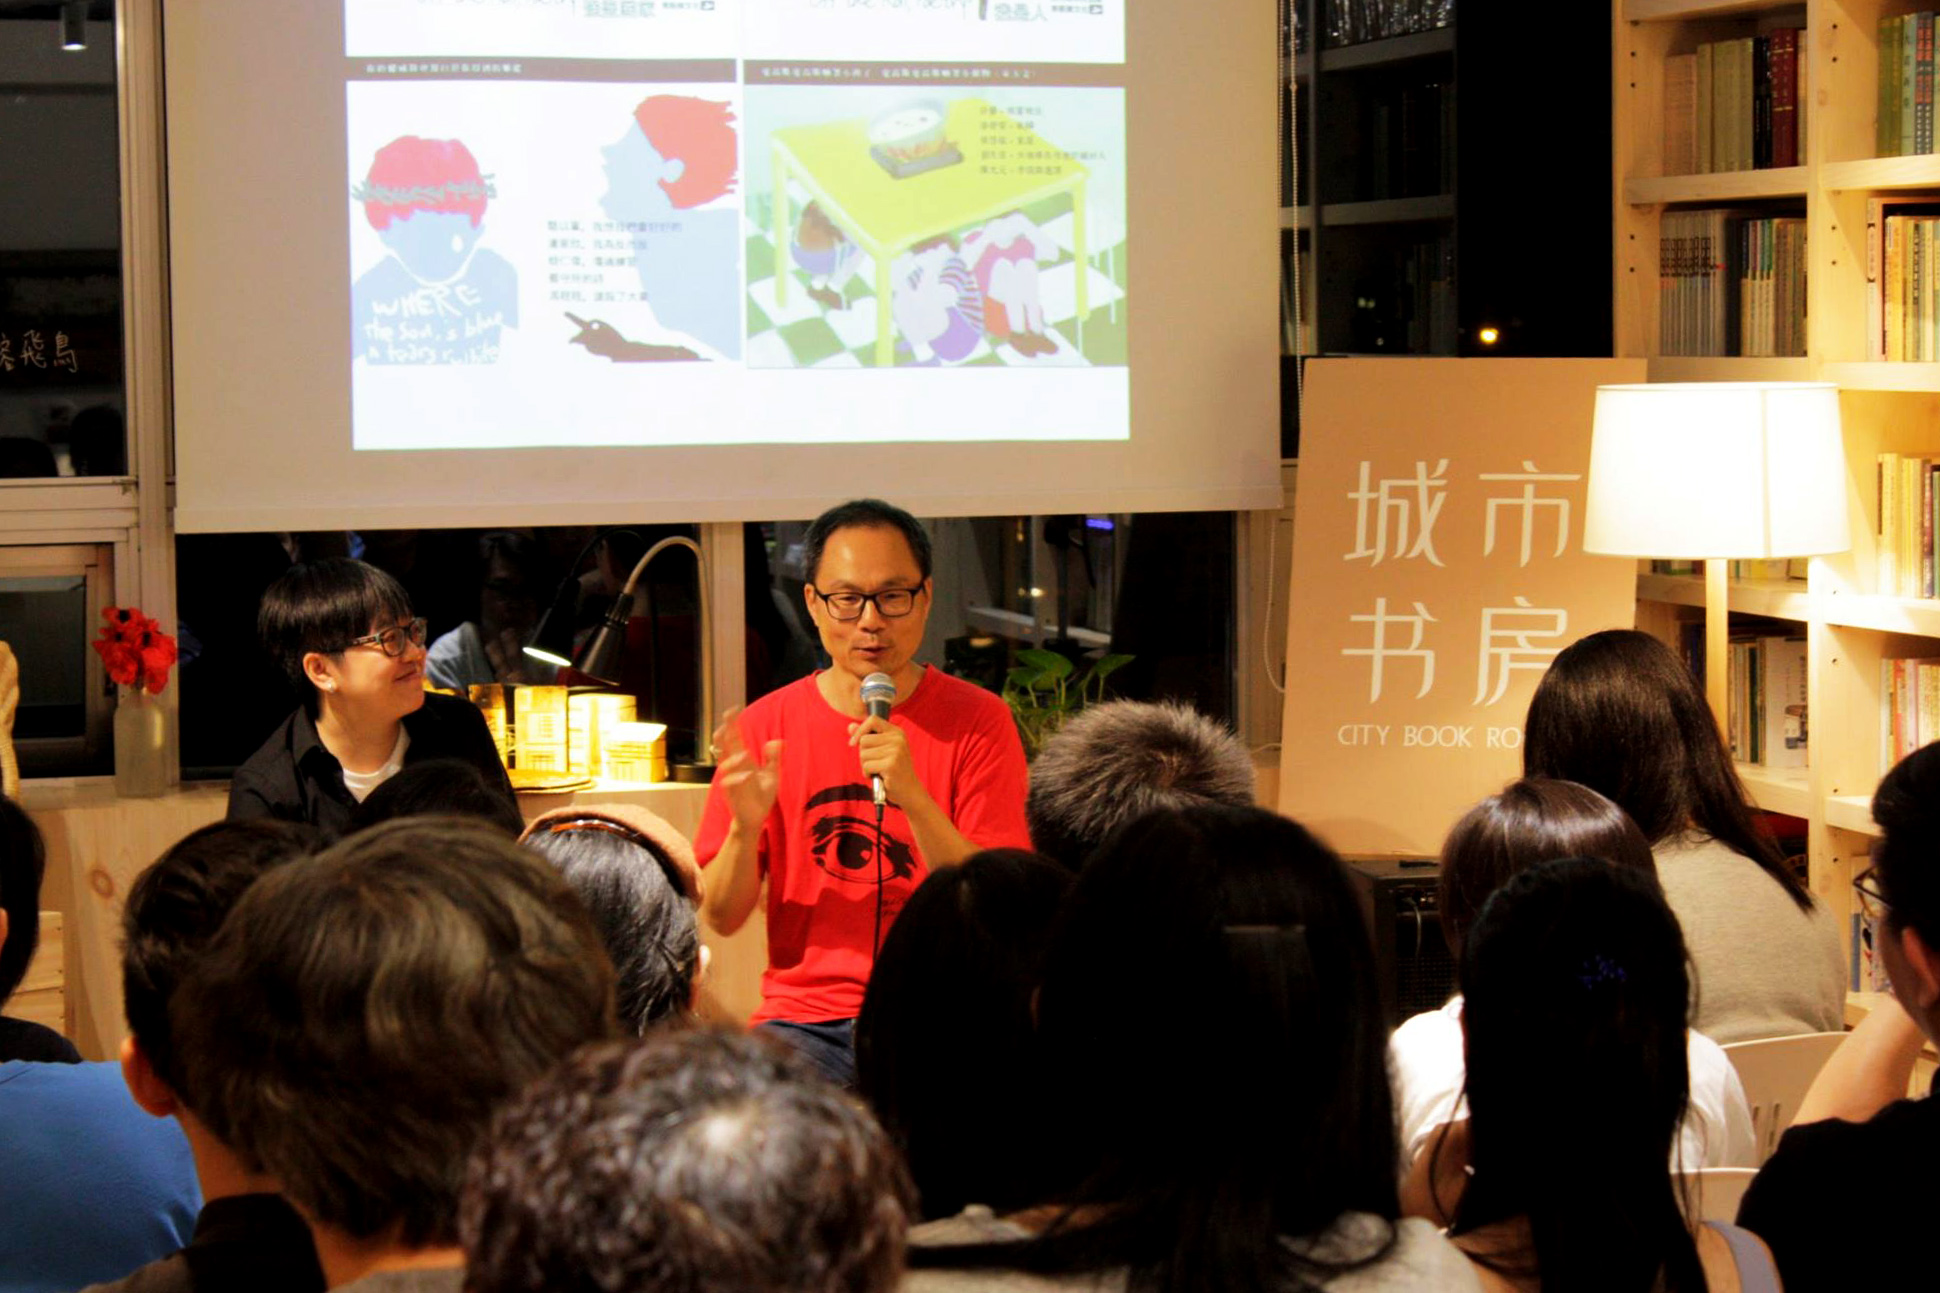 Renowned Taiwanese poet Hung Hung accepted an invitation from City Book Room to take part in an event on 8 April 2017, where he discussed communications in today's world. His poetry was written on the glass windows. I was fortunate enough to be able to host the event.